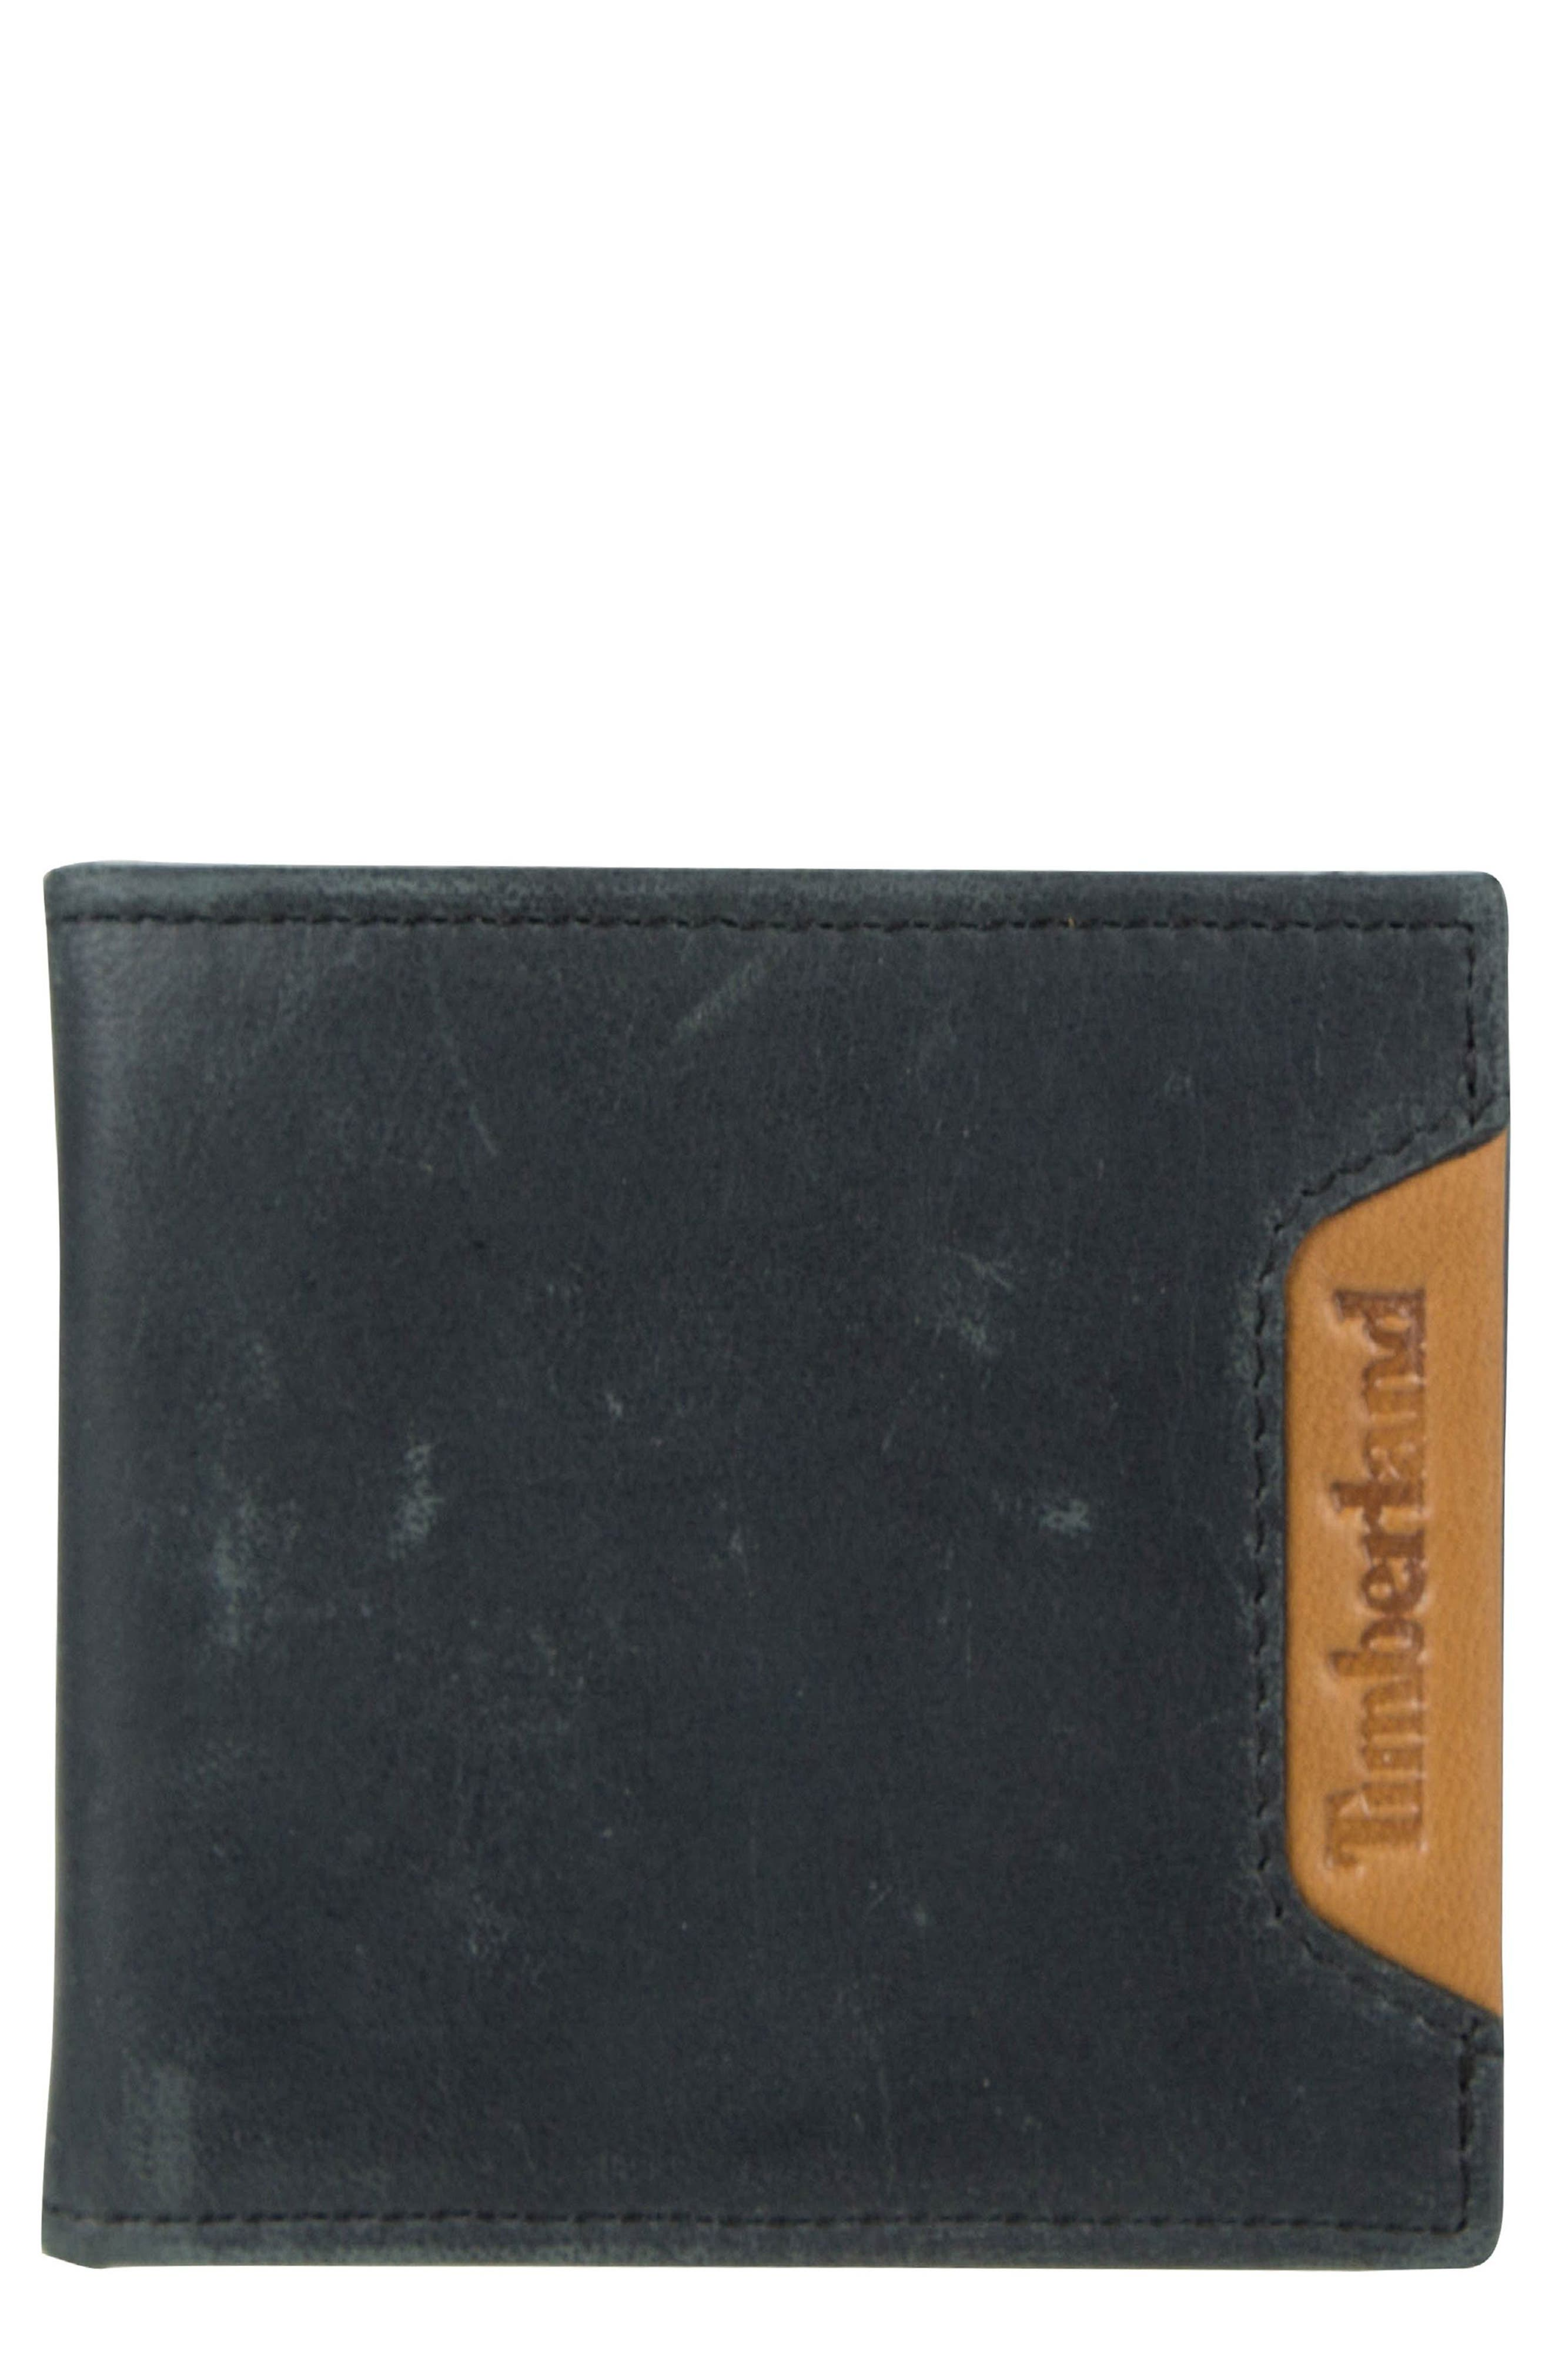 Cloudy Leather Wallet,                             Main thumbnail 1, color,                             001